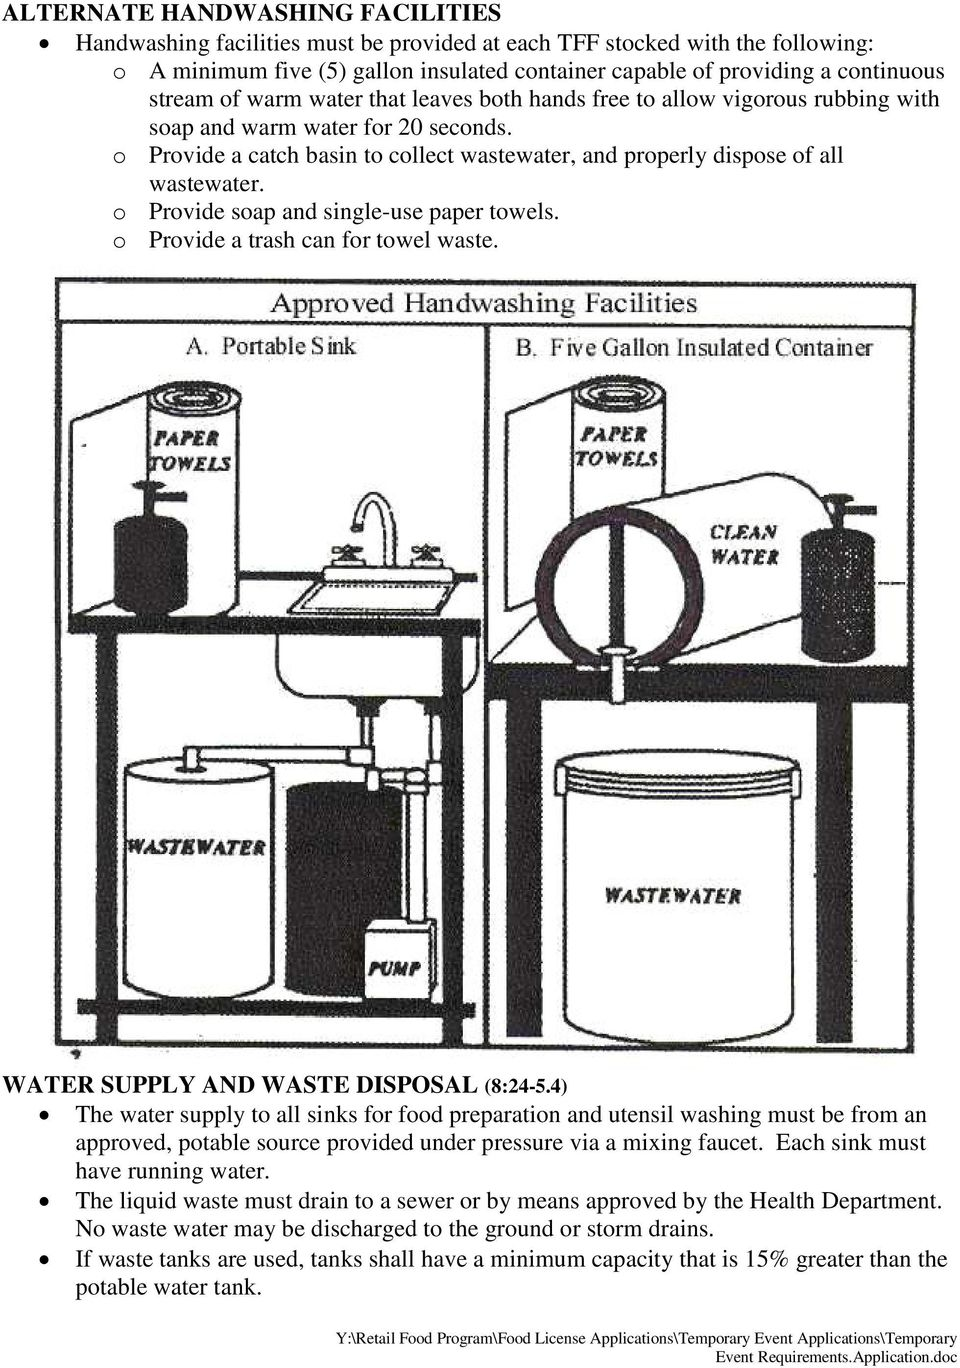 o Provide a catch basin to collect wastewater, and properly dispose of all wastewater. o Provide soap and single-use paper towels. o Provide a trash can for towel waste.